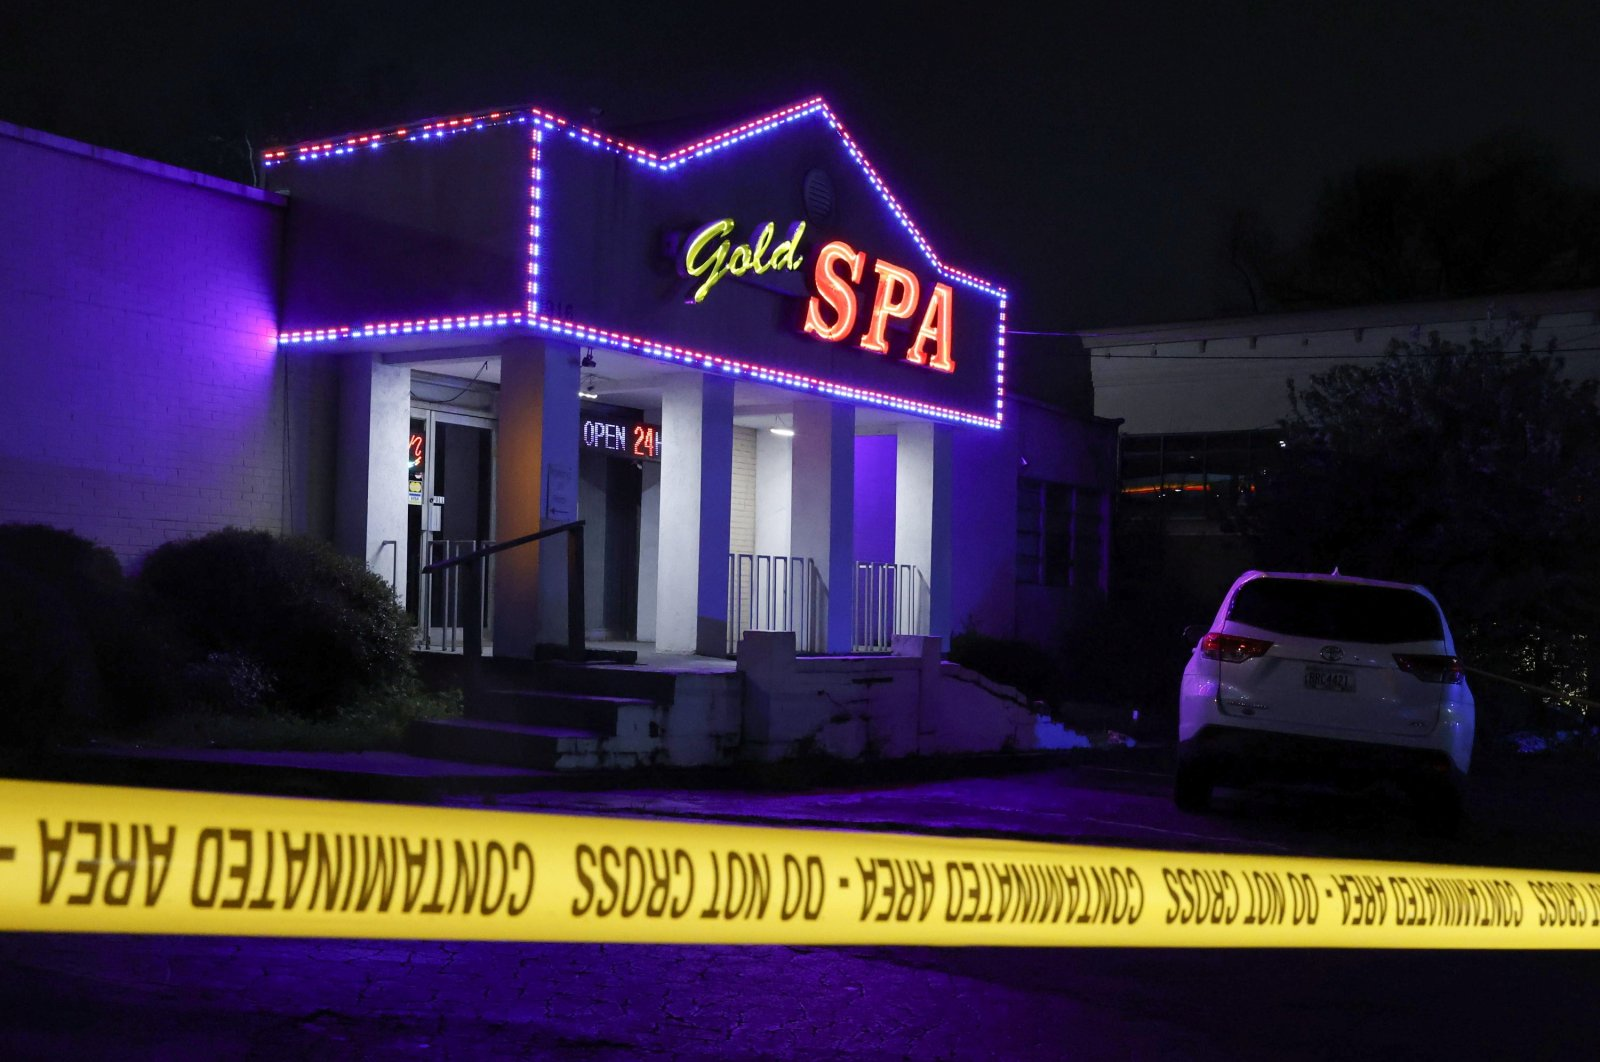 Crime scene tape surrounds Gold Spa after the deadly shootings at a massage parlor and two day spas in the Atlanta area, in Atlanta, Georgia, U.S. March 16, 2021. (Reuters Photo)